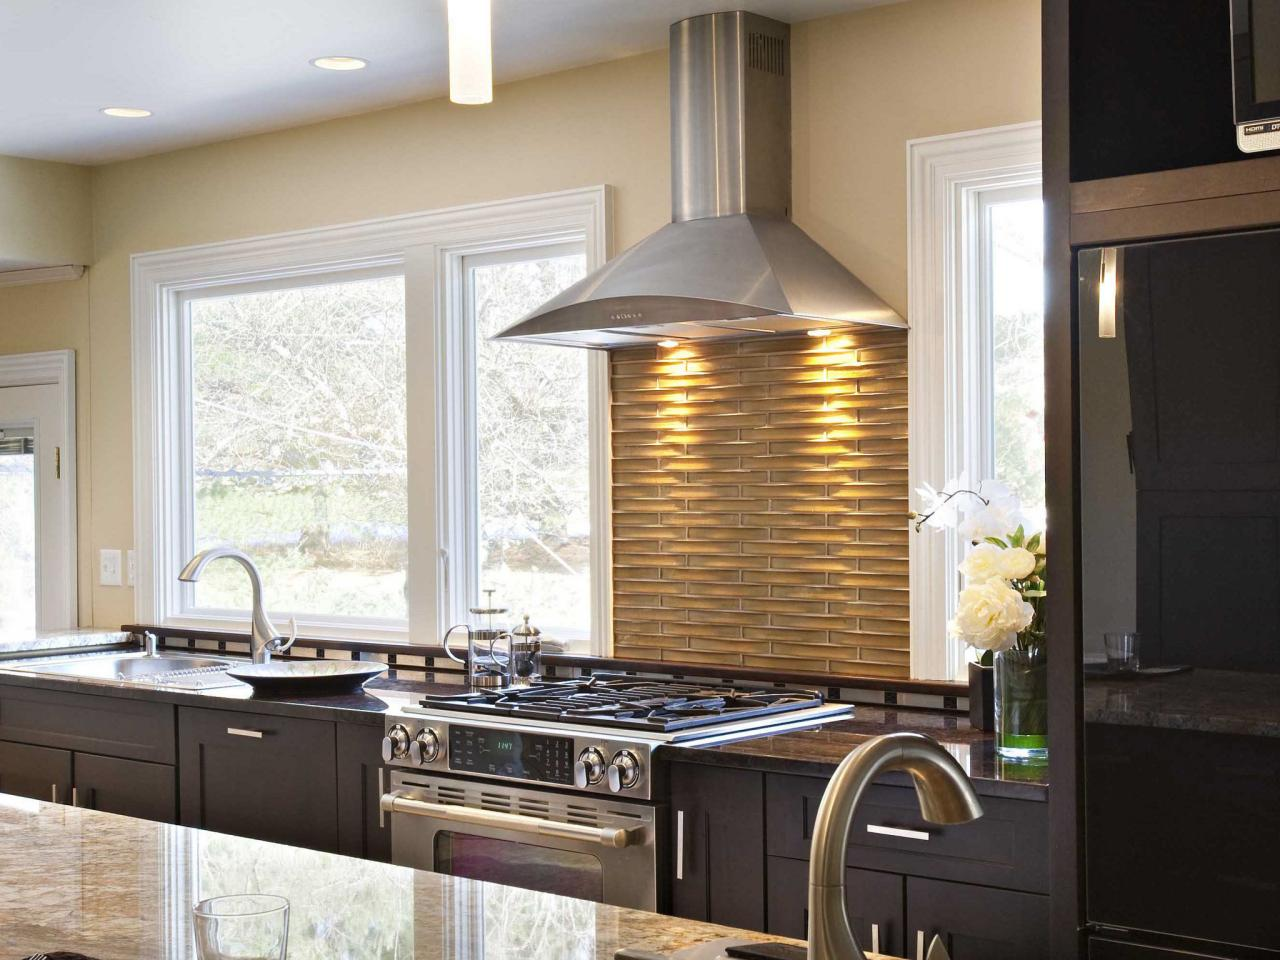 kitchen stove backsplash ideas: pictures & tips from hgtv | hgtv